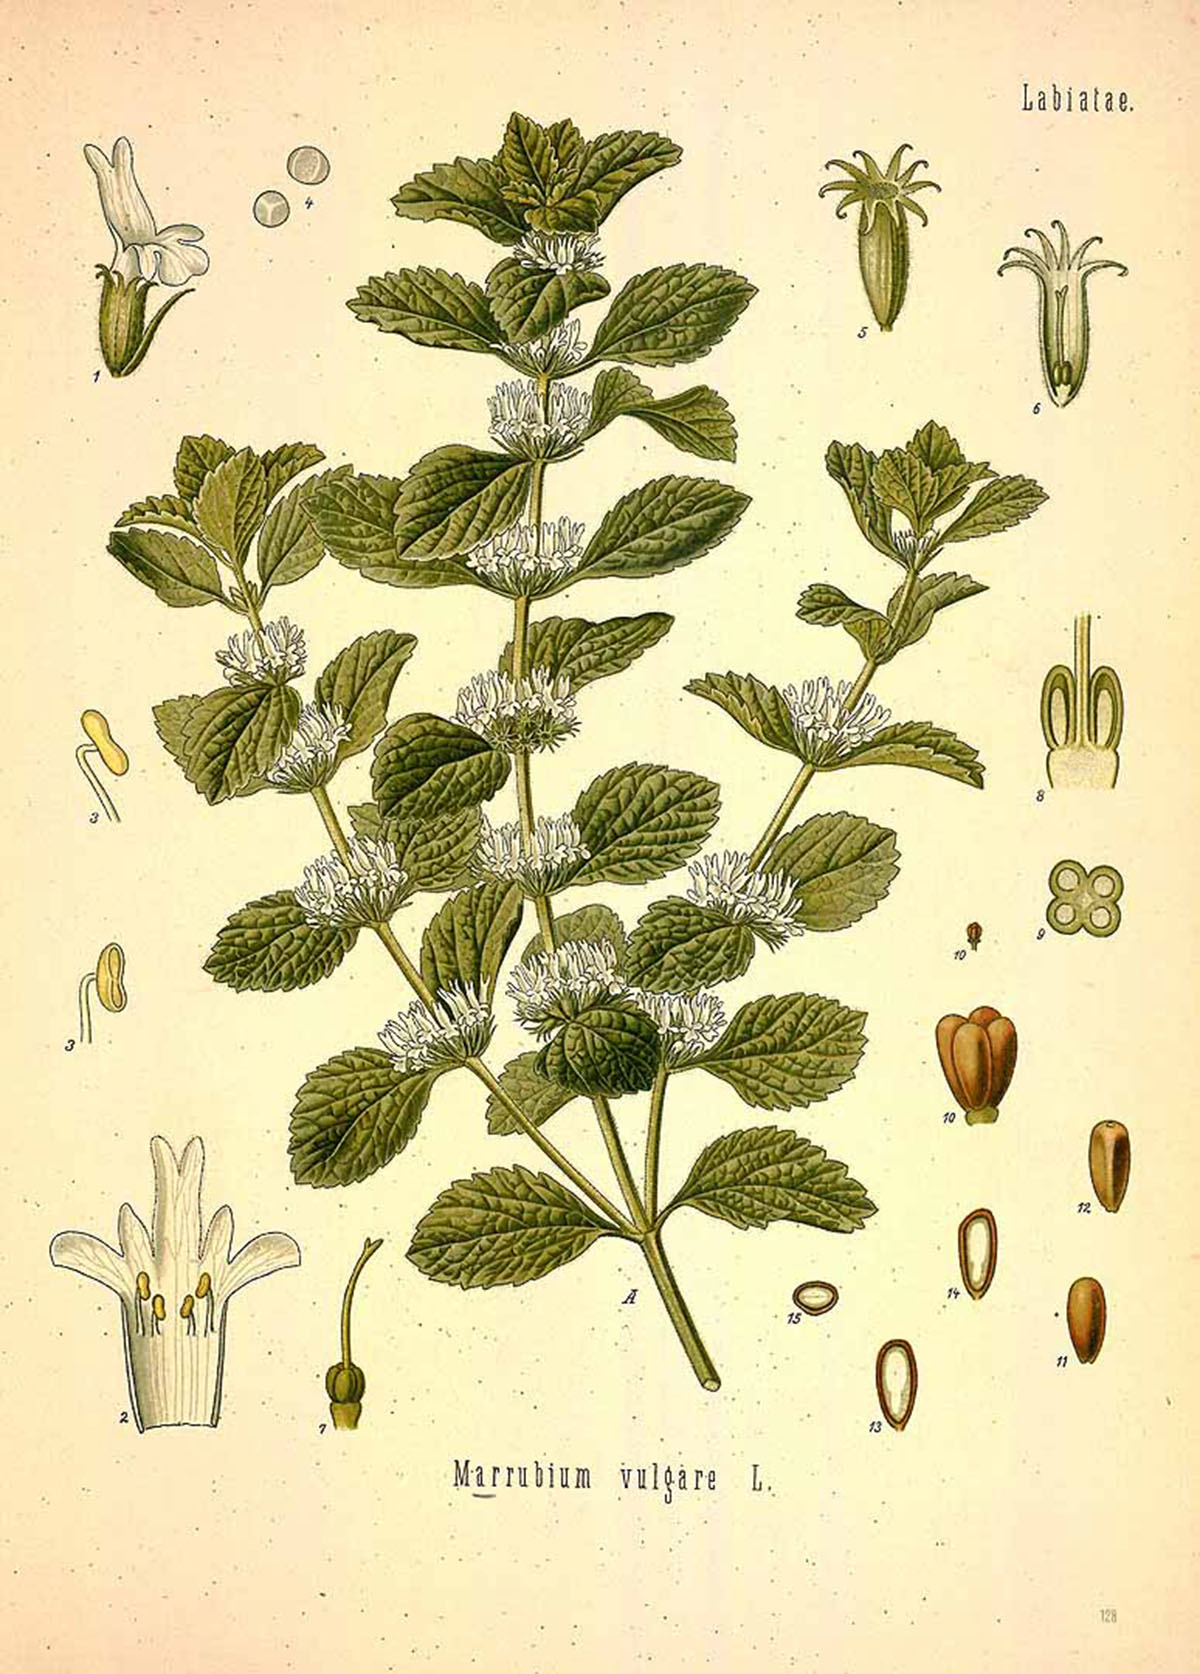 Reviving Horehound: 6 Ways You Can Use This Traditional Herb | Herbal Academy | Horehound is an herb that carries many useful properties but has fallen off the map in recent times. Learn six ways you can use this traditional herb today.